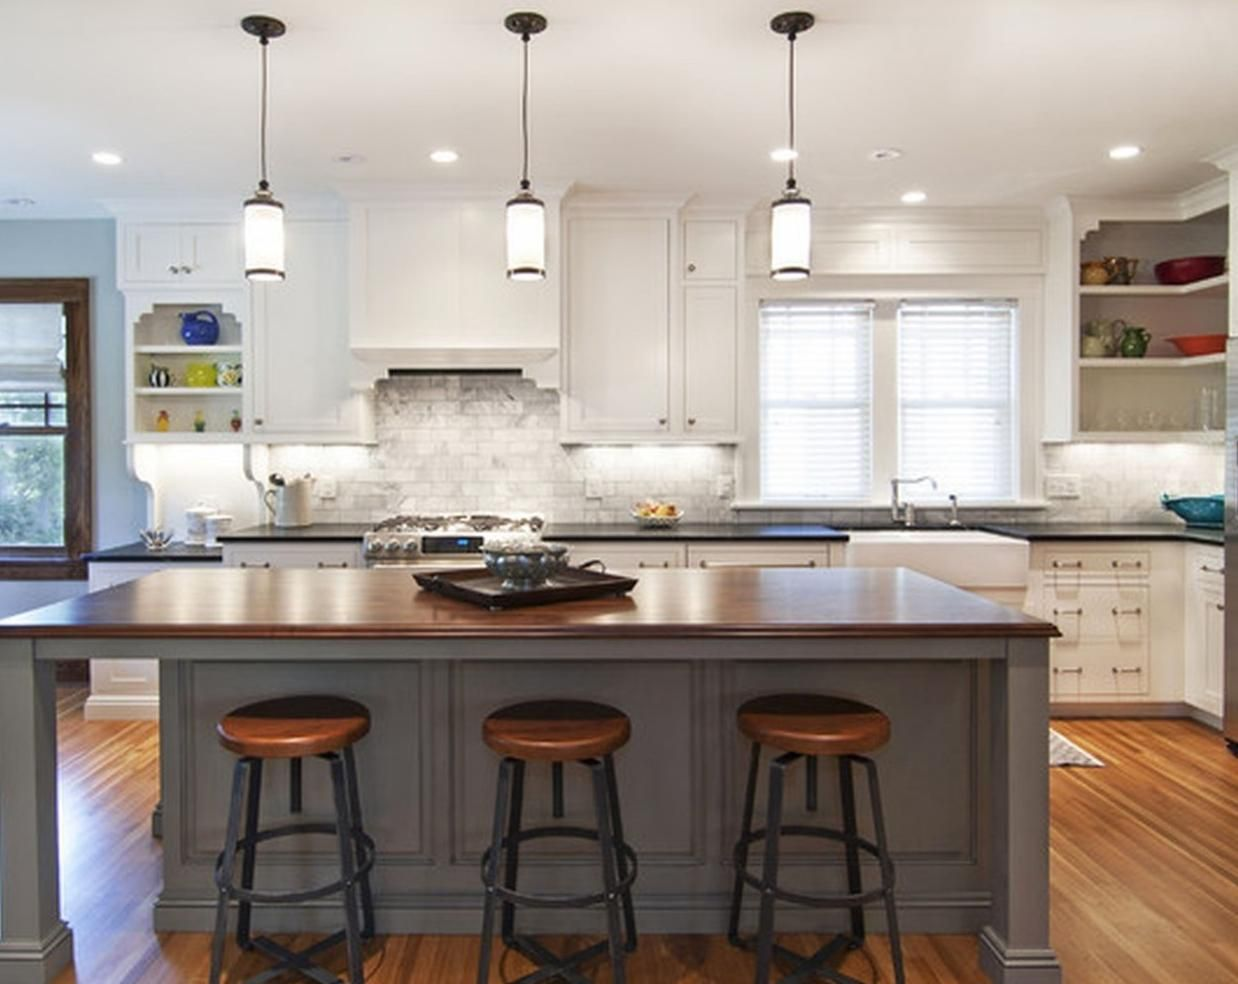 37+ The Most Popular Kitchen Lighting Ideas in 2019